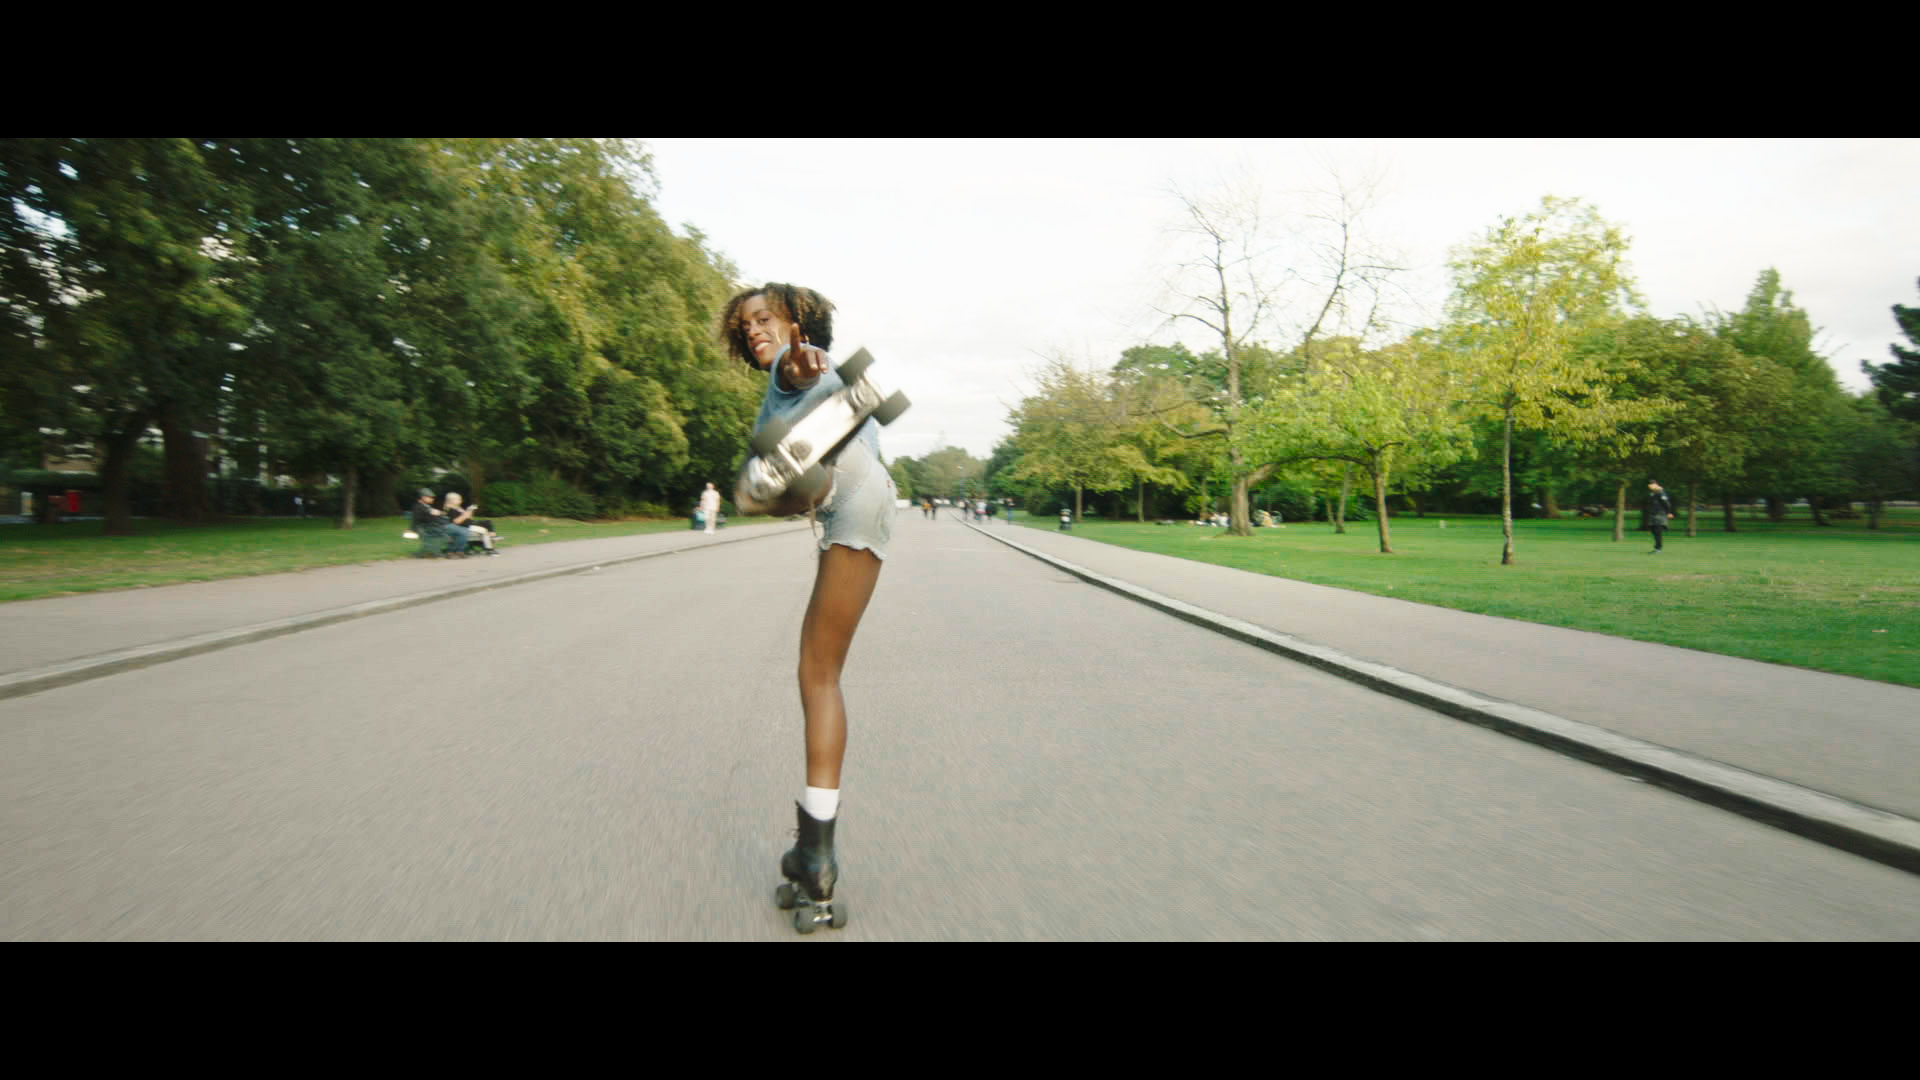 A woman rollerskates down a wide empty road. She turns her head and points with her left hand back to the camera, with her left leg outstretched behind her.